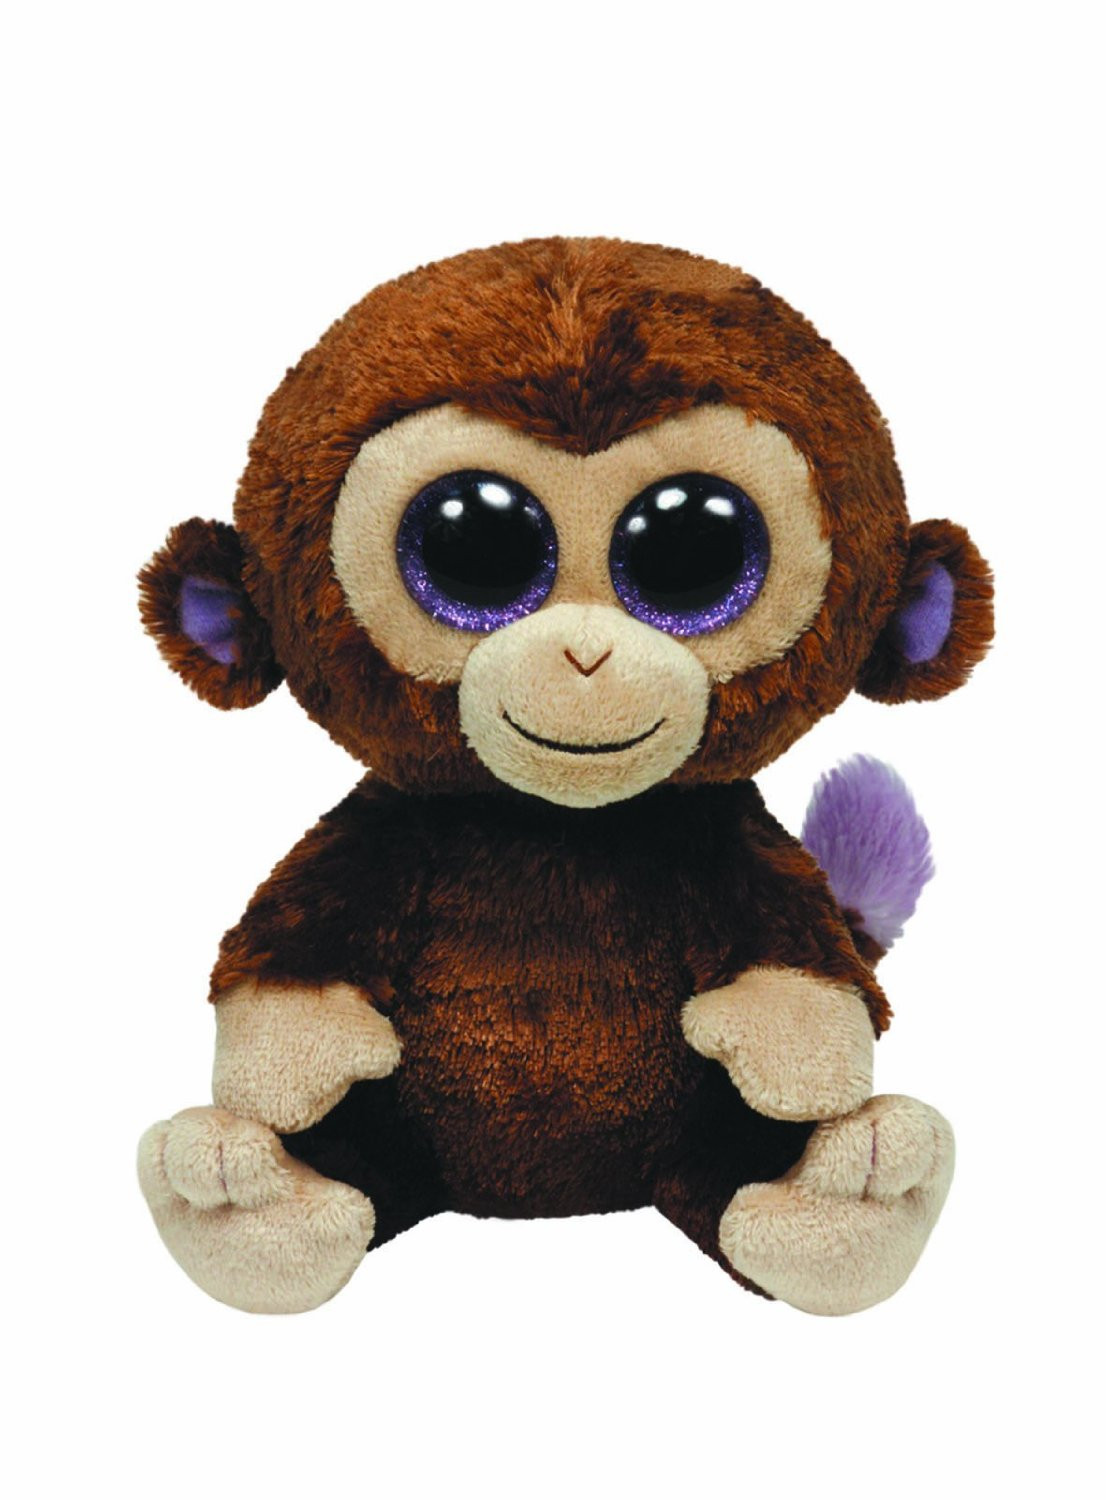 Beanie Boos Regular Coconut - Brown Monkey